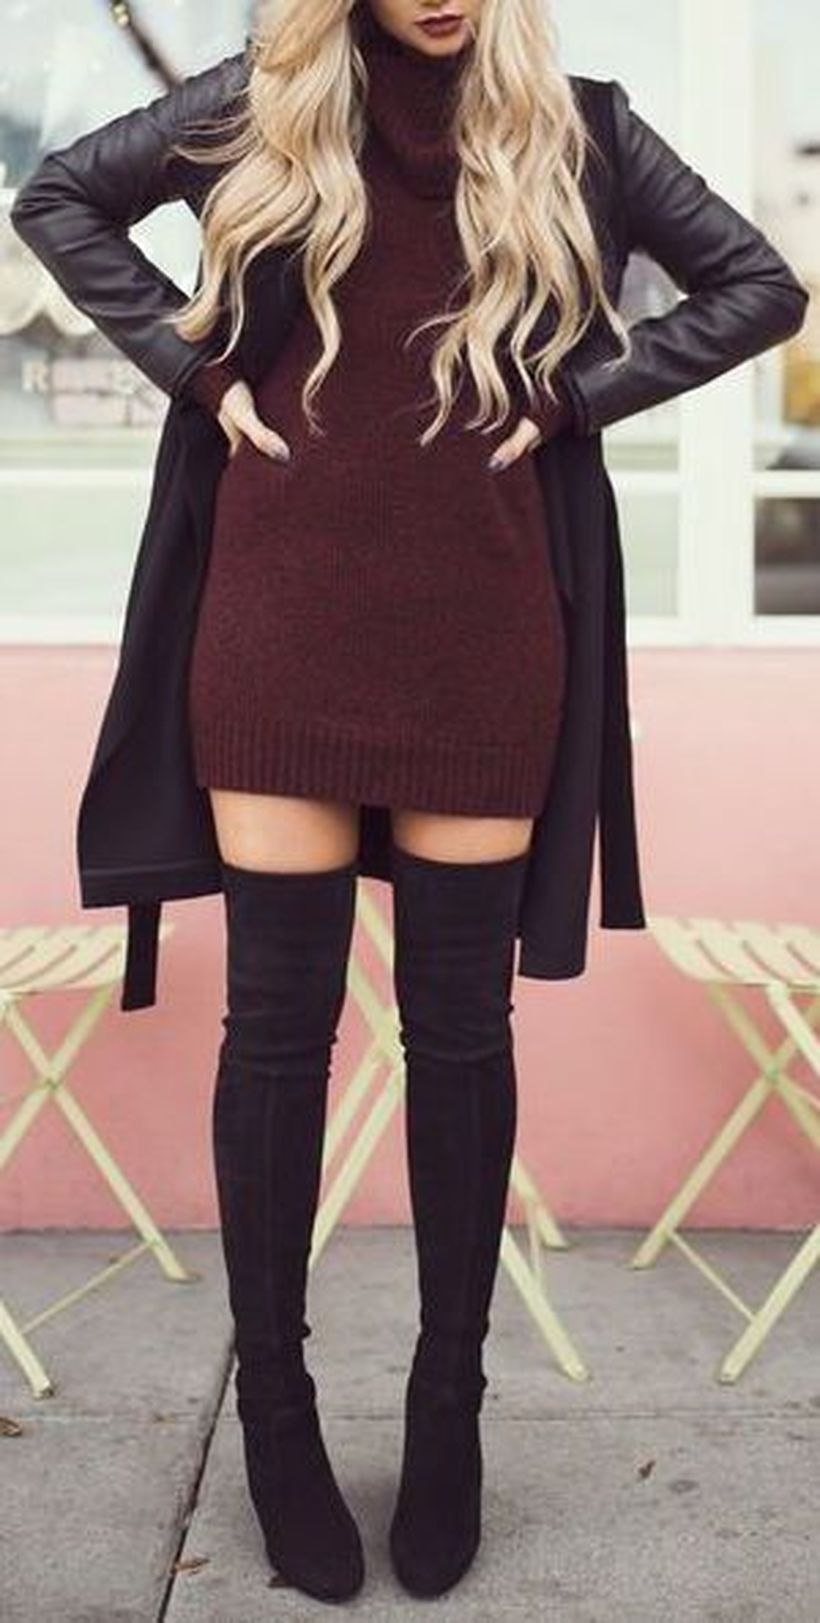 Trendy over the knee boots for winter and fall outfits 14